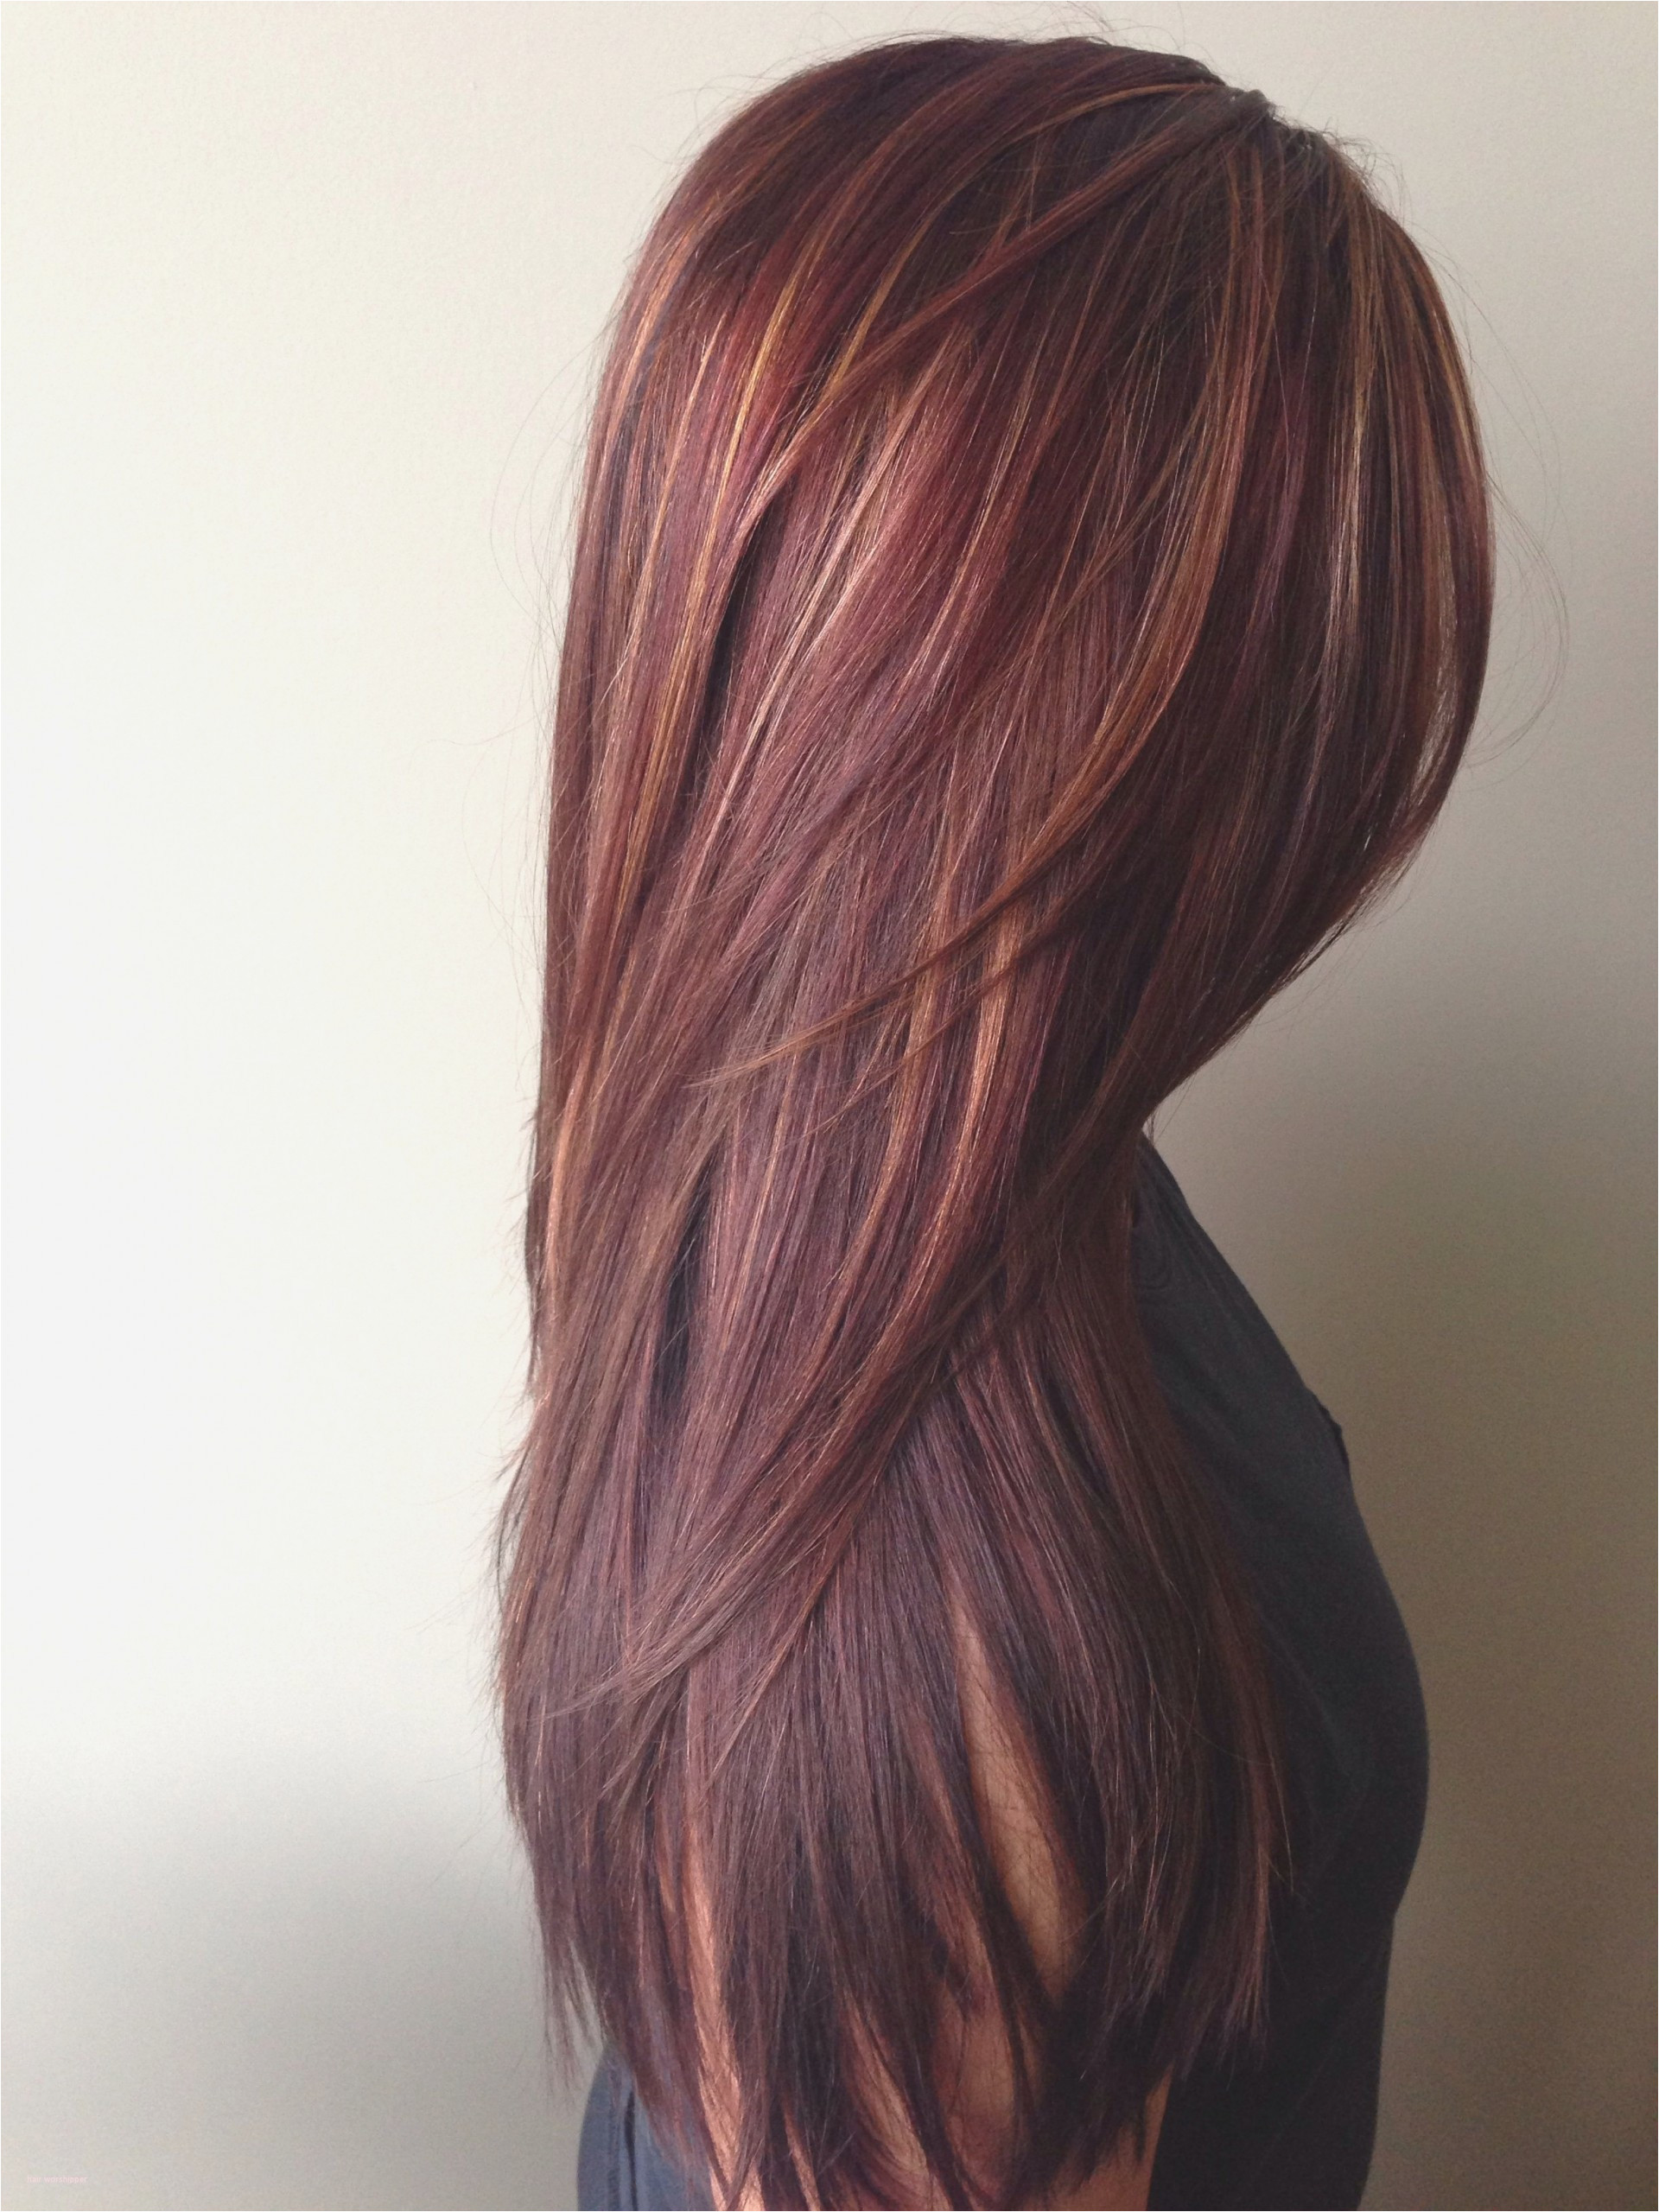 023 Dark Red Wealthy Hair Color With Caramel Highlights Lovely Rich Gorgeous Hairstyle Astounding Colors